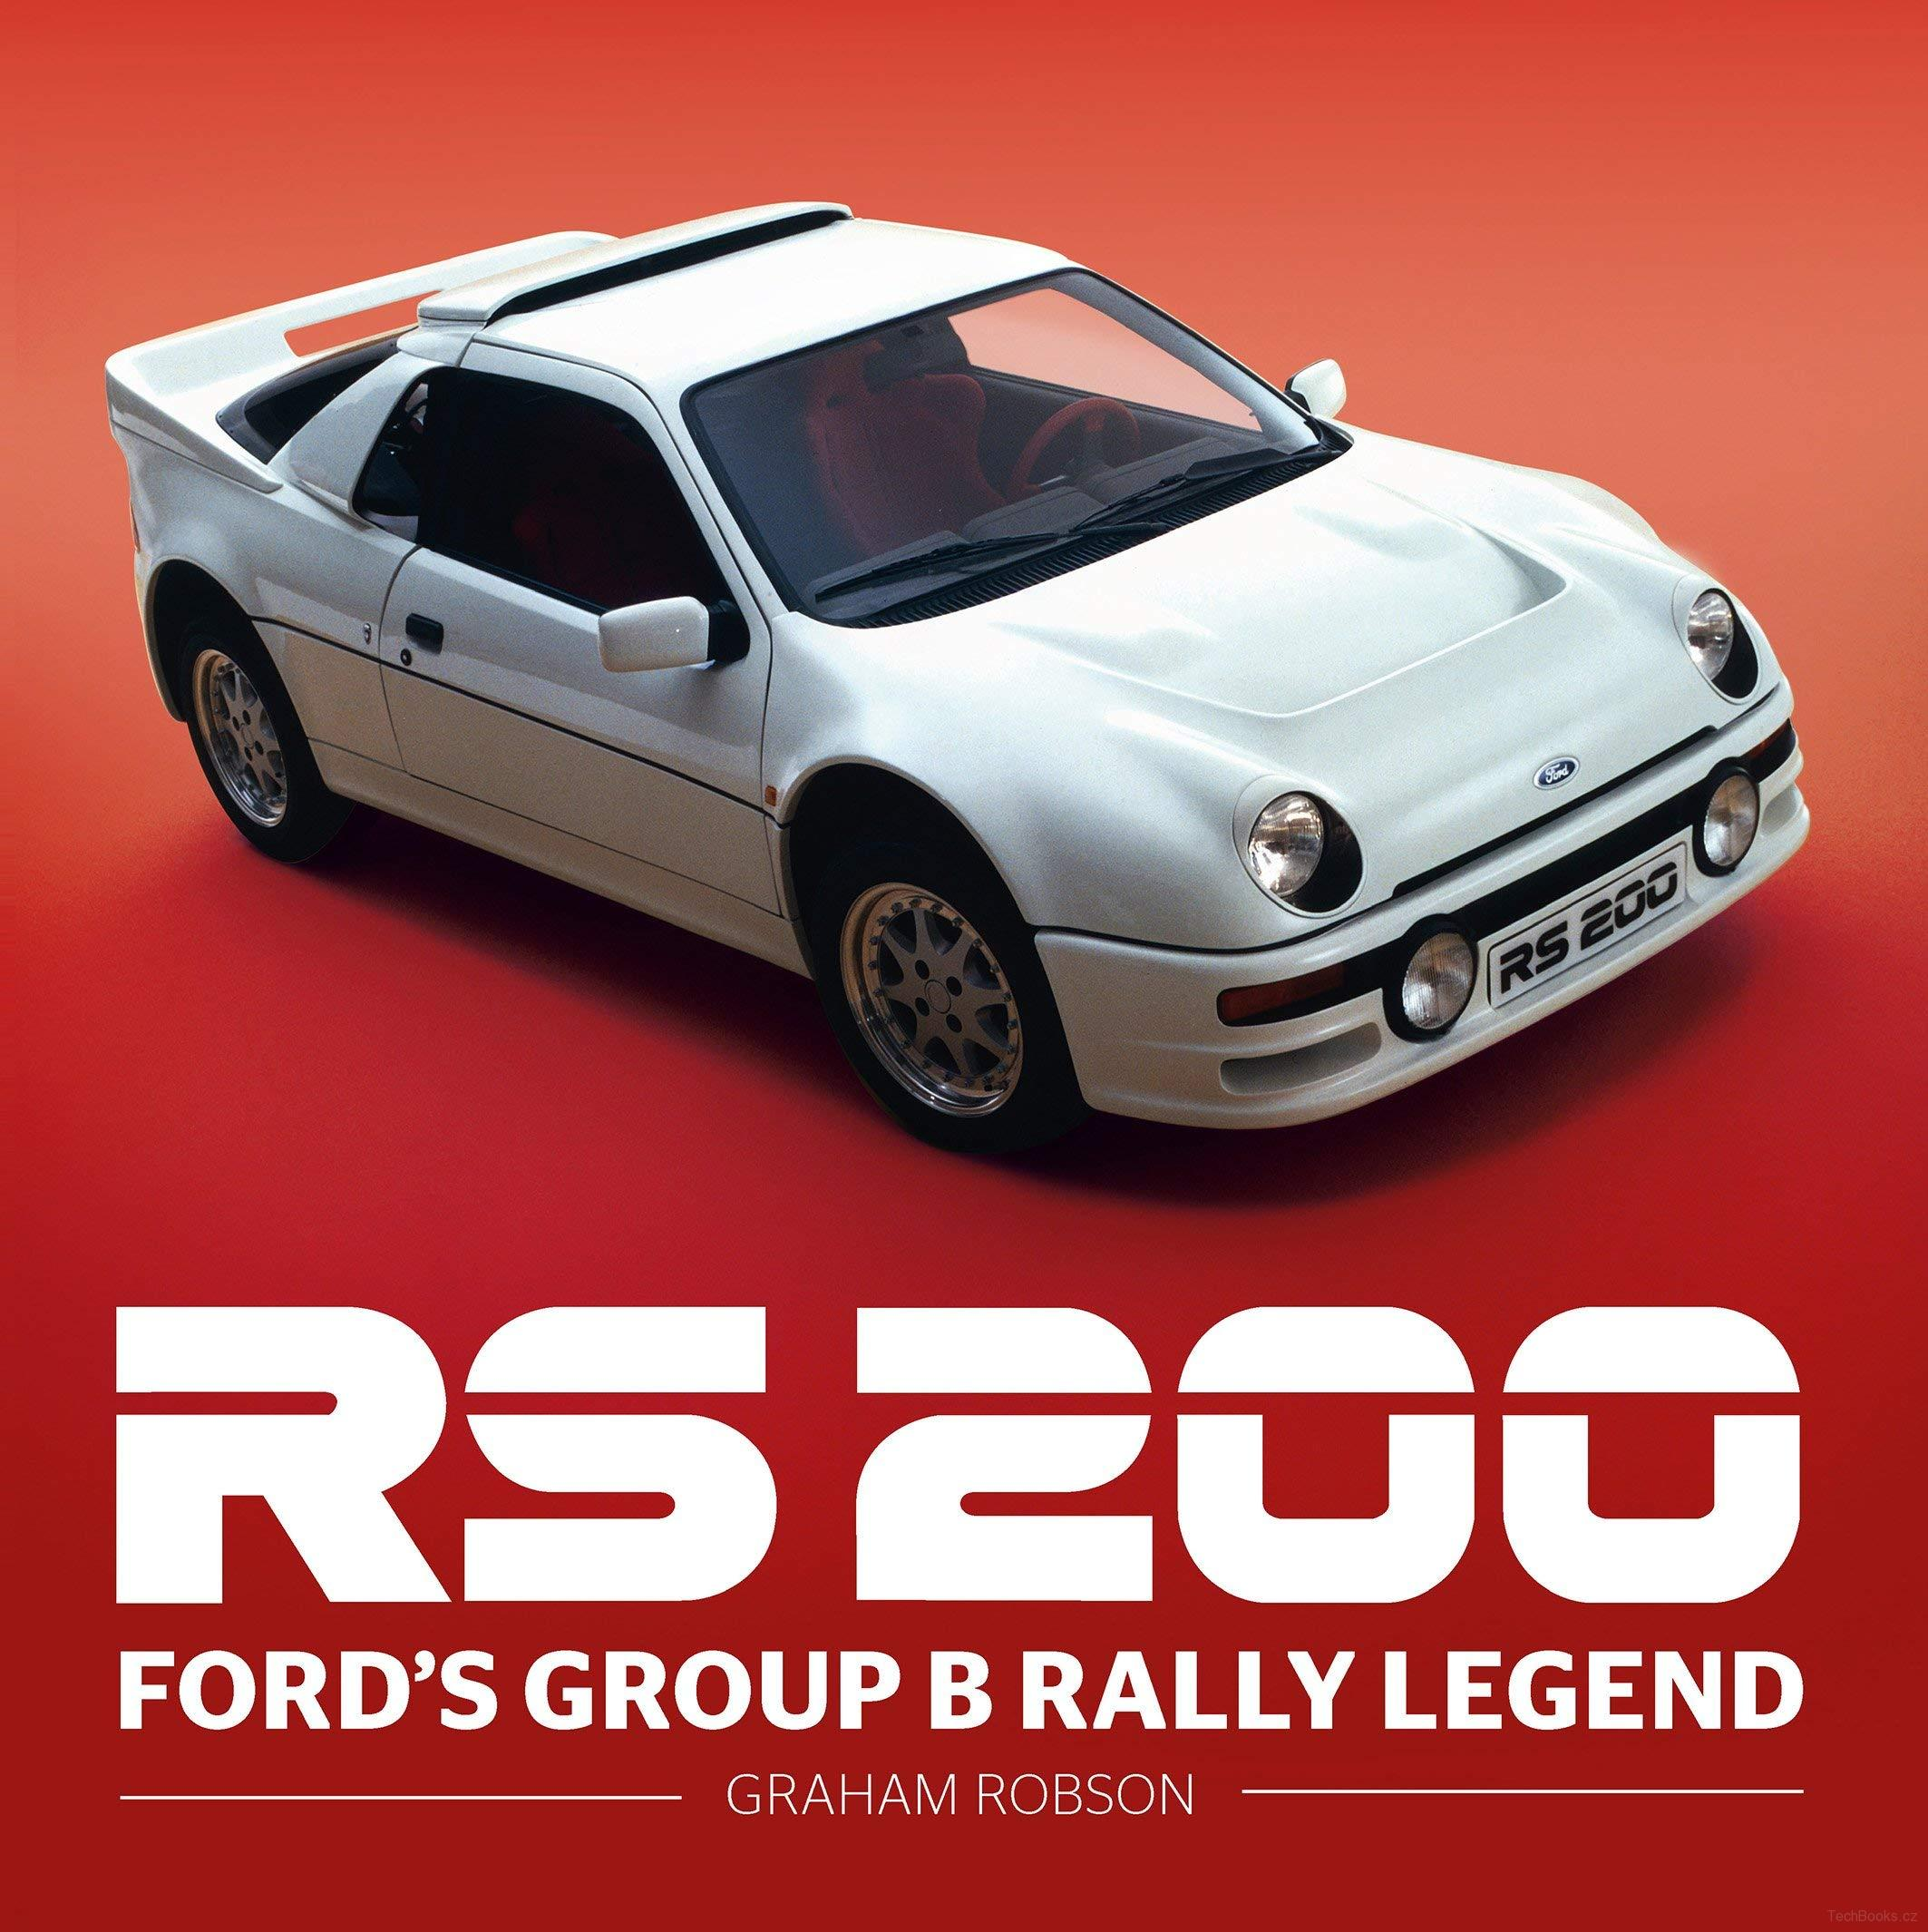 RS200 – Ford's Group B Rally Legend